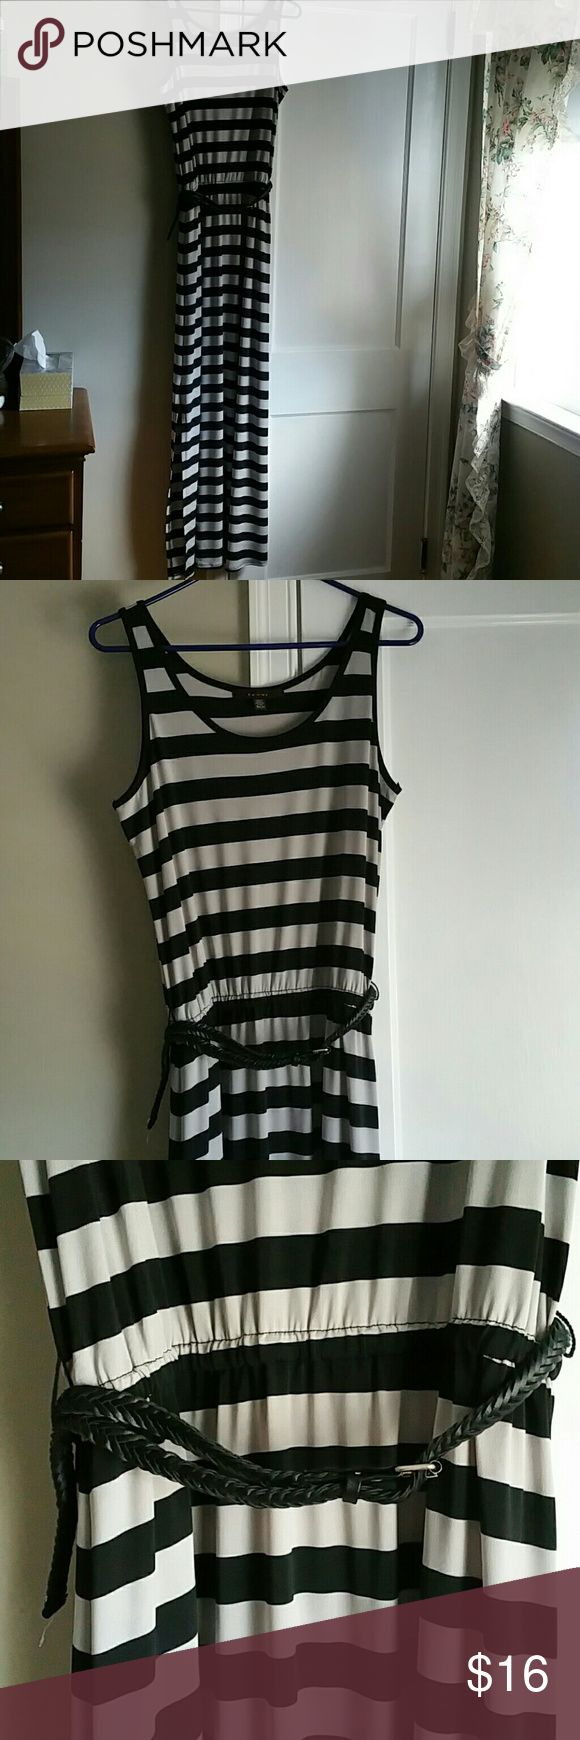 NWOT Maxi Dress Stripes black and grey with braided belt. Size says small but will fit medium as well. I love this dress but it's too big for me. Just tried it on and it's too big for me. Fever Dresses Maxi